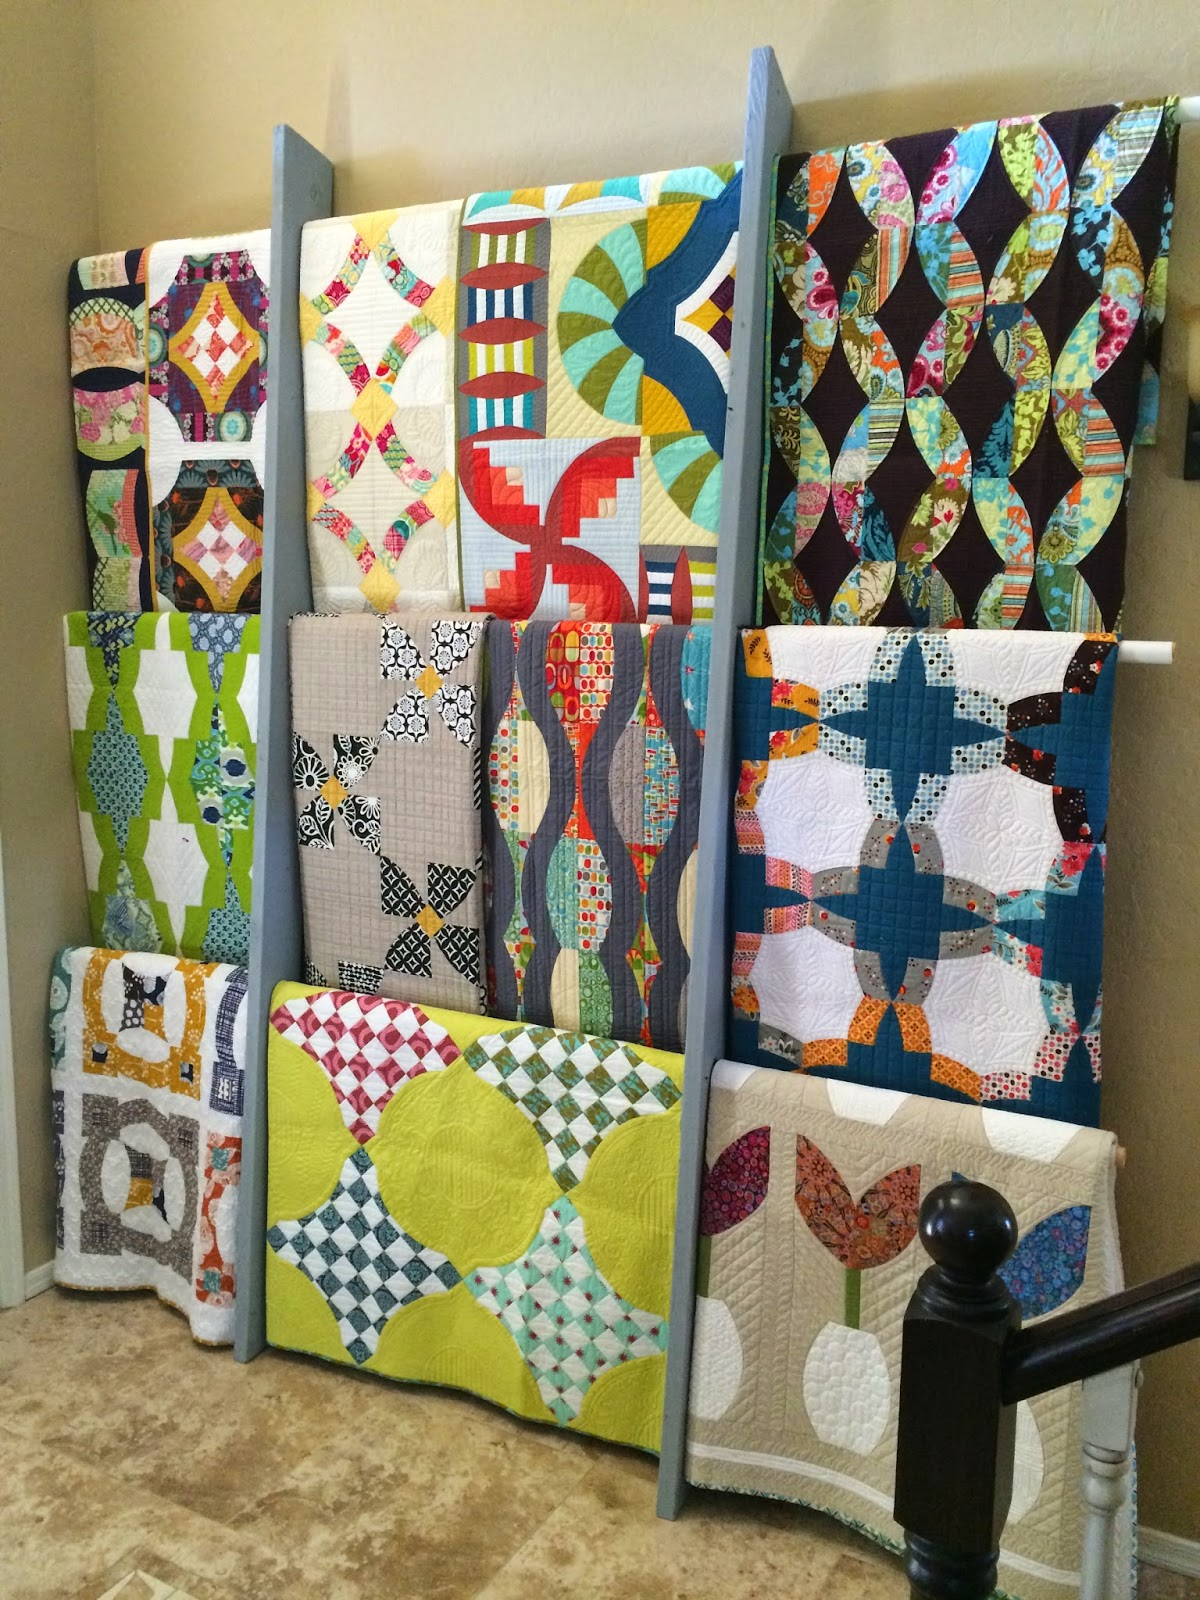 Sew Kind Of Wonderful: Tuesday Tips - Displaying Quilts